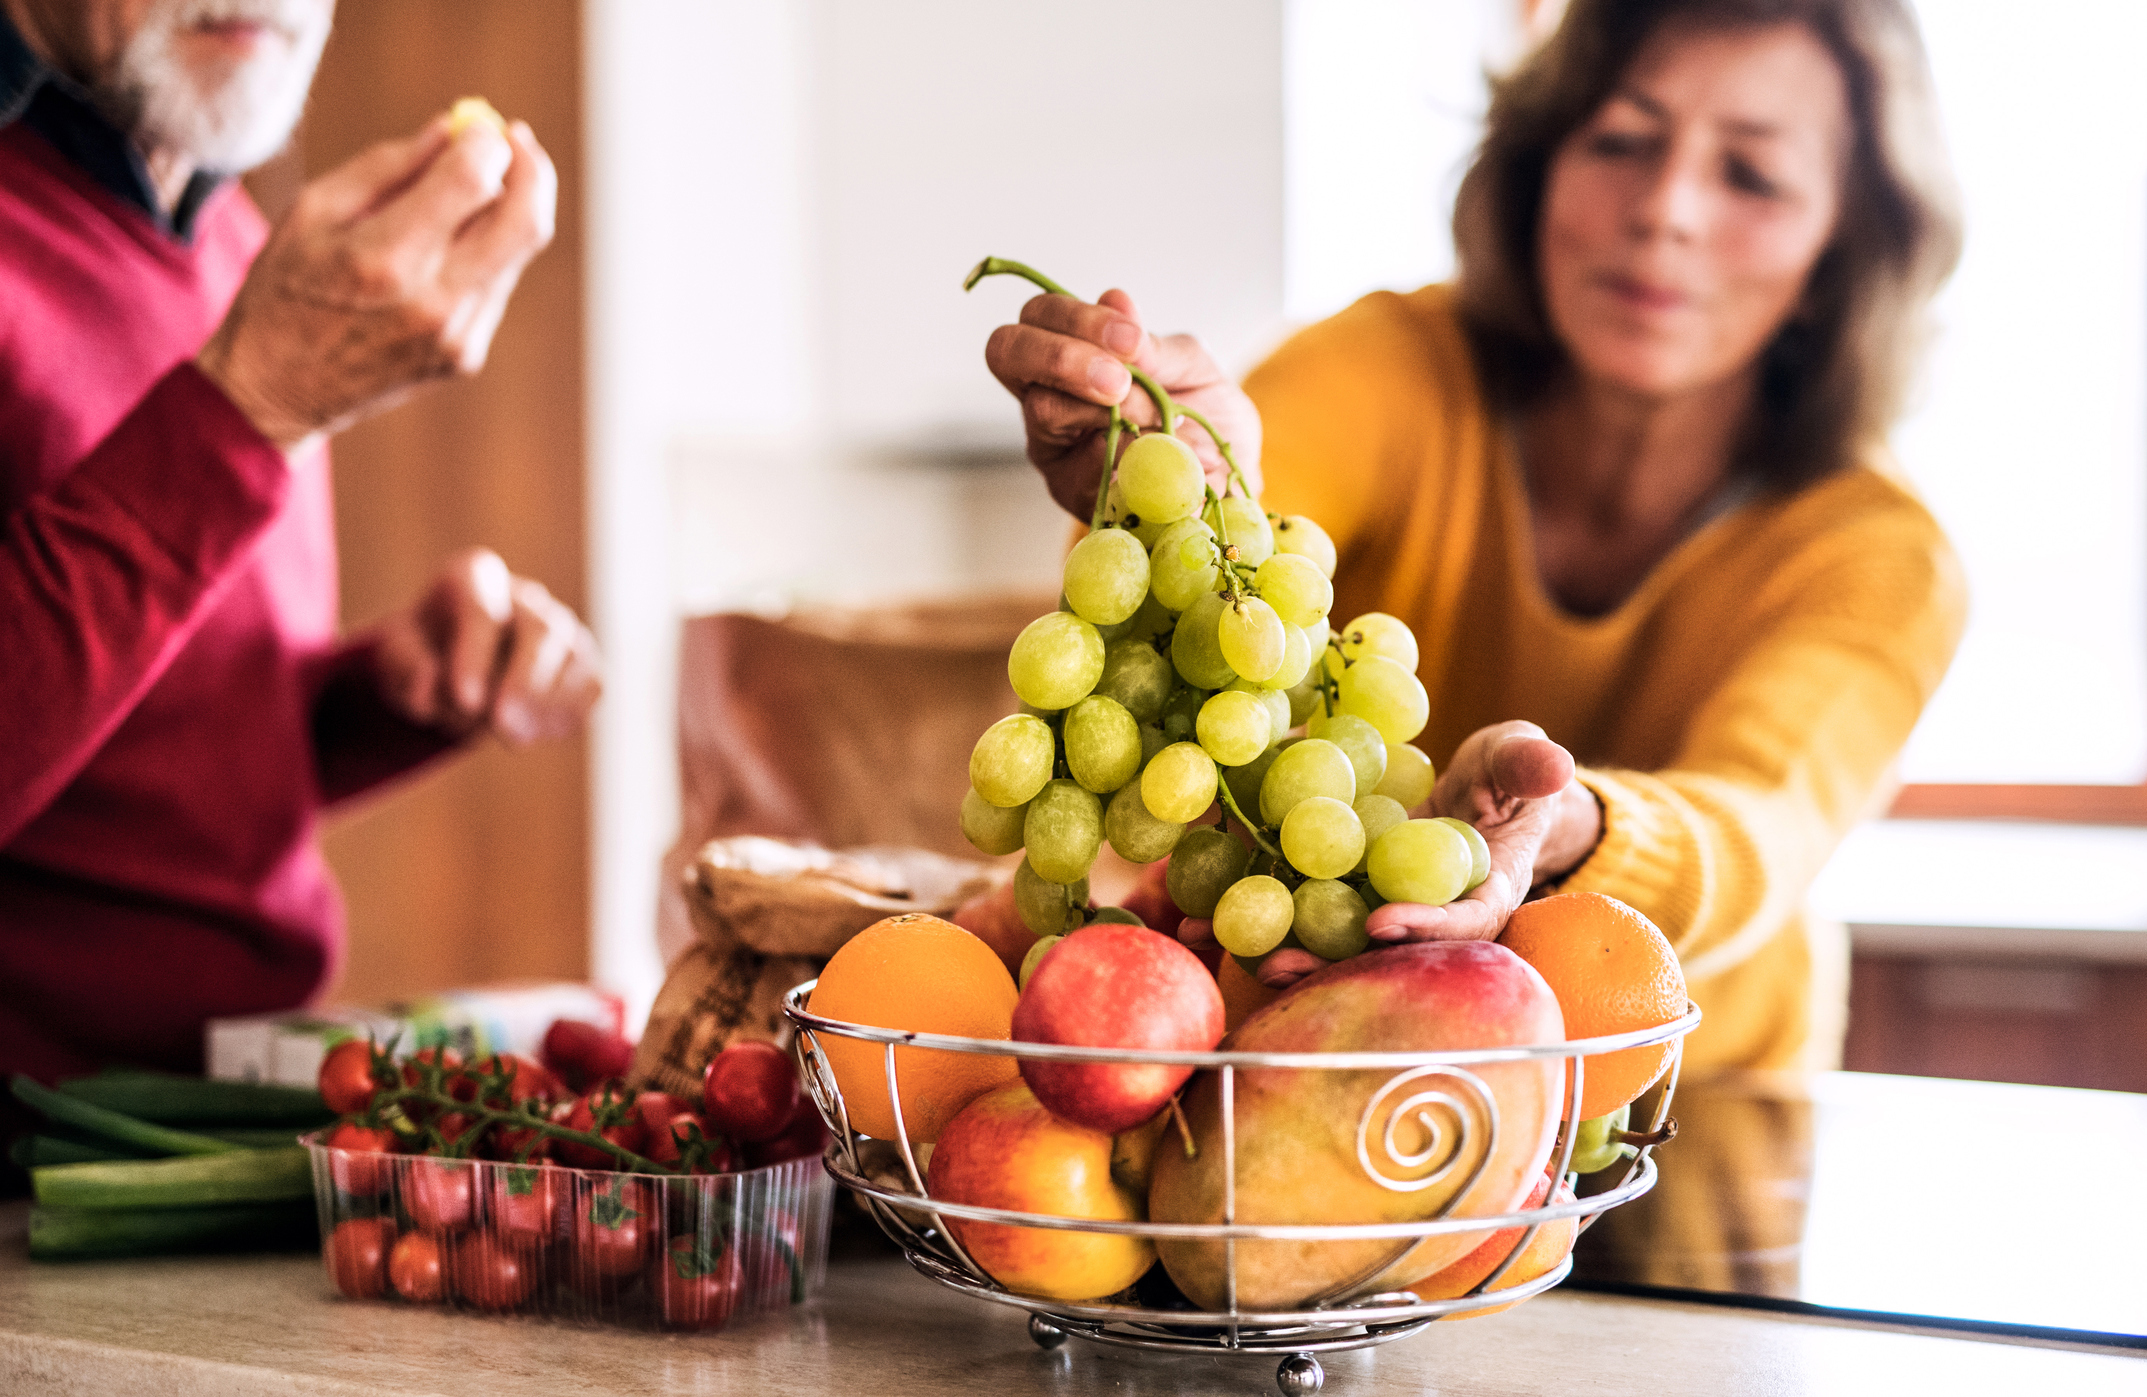 Healthy Diets Linked To Lower Risk Of Hearing Loss In